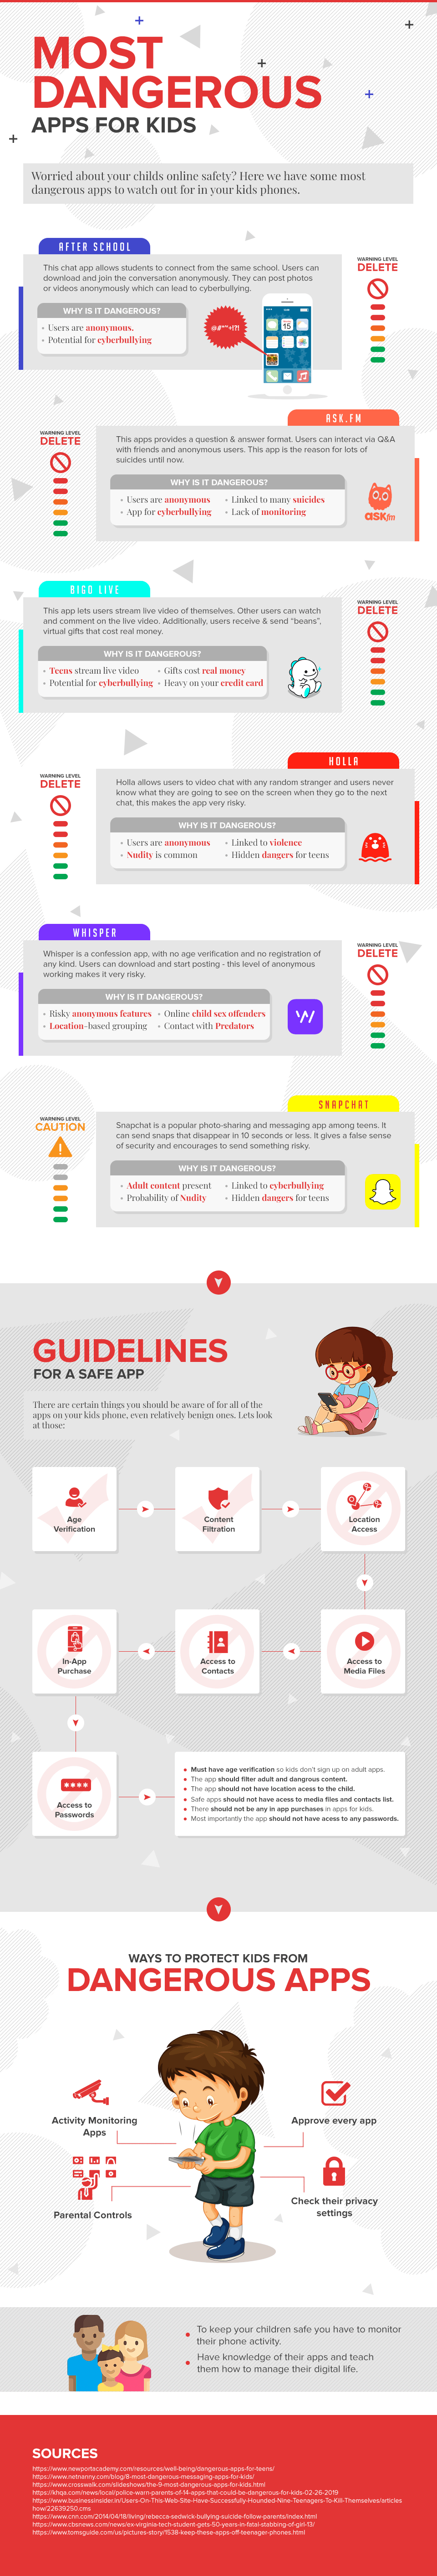 internet safety tips for kids (Infographic)